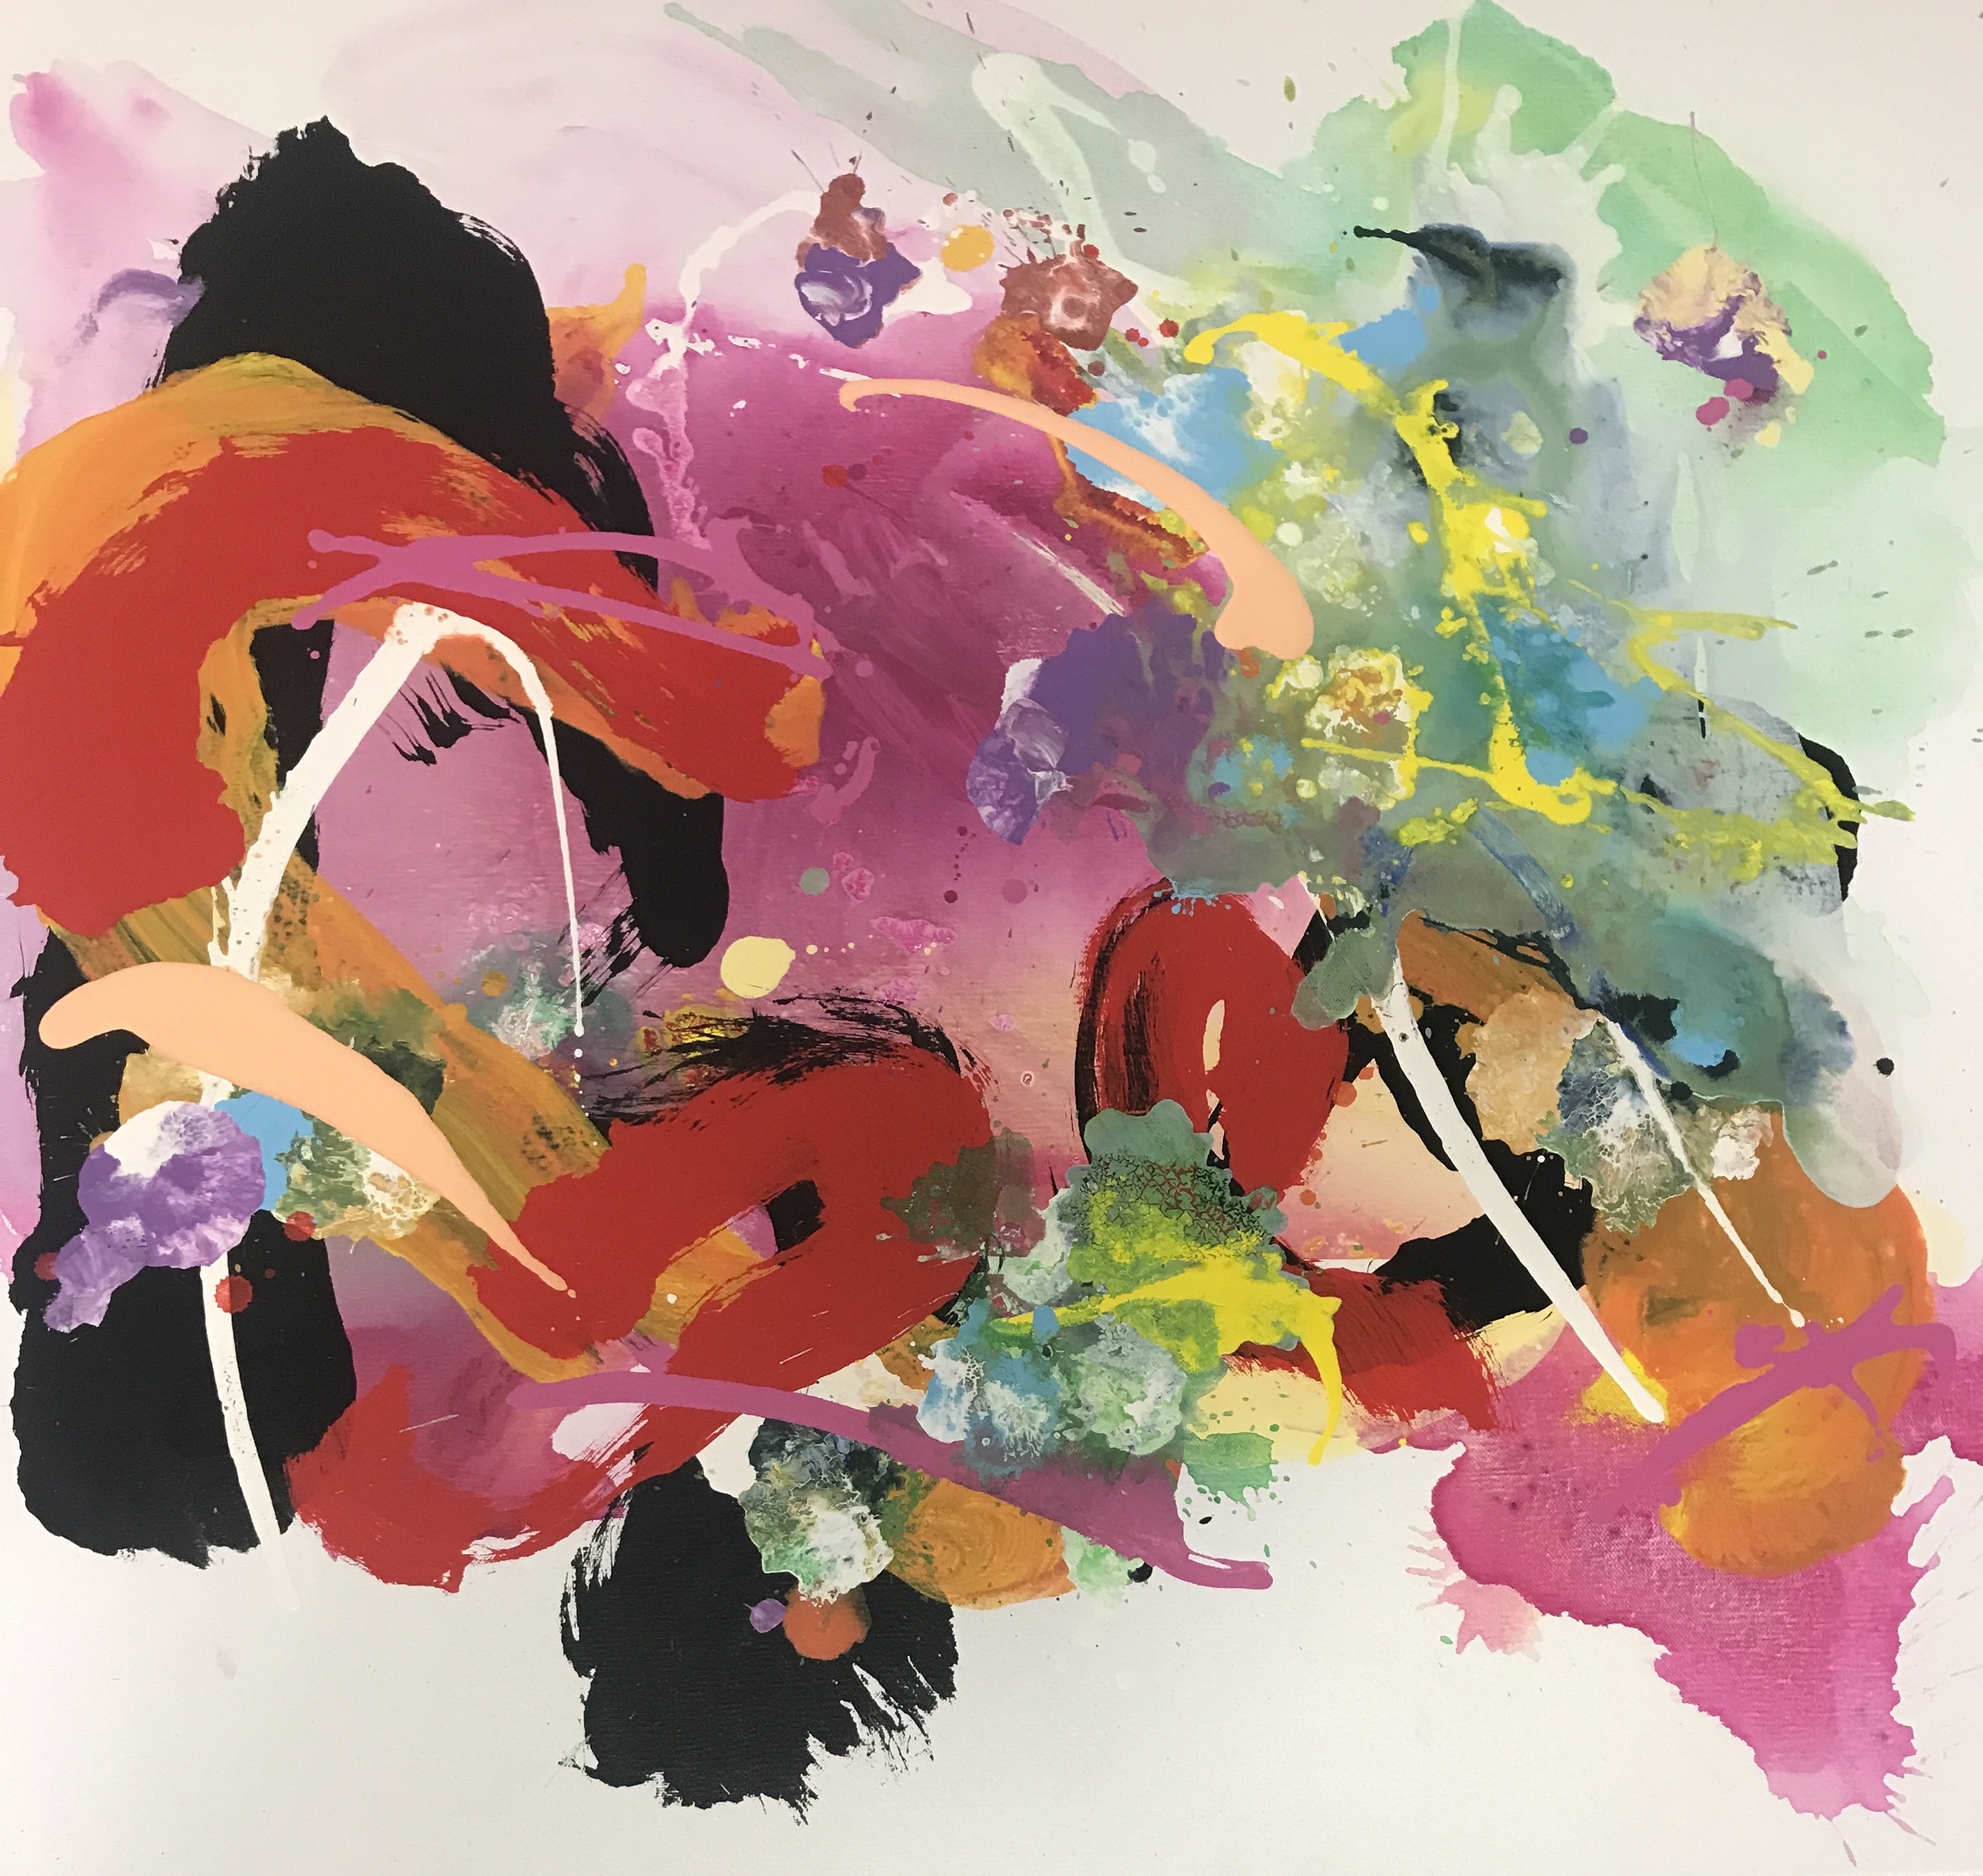 Kuo_Graham_AndFlowersPickThemselves1_AcrylicOnCanvas_106.5x106.5cm